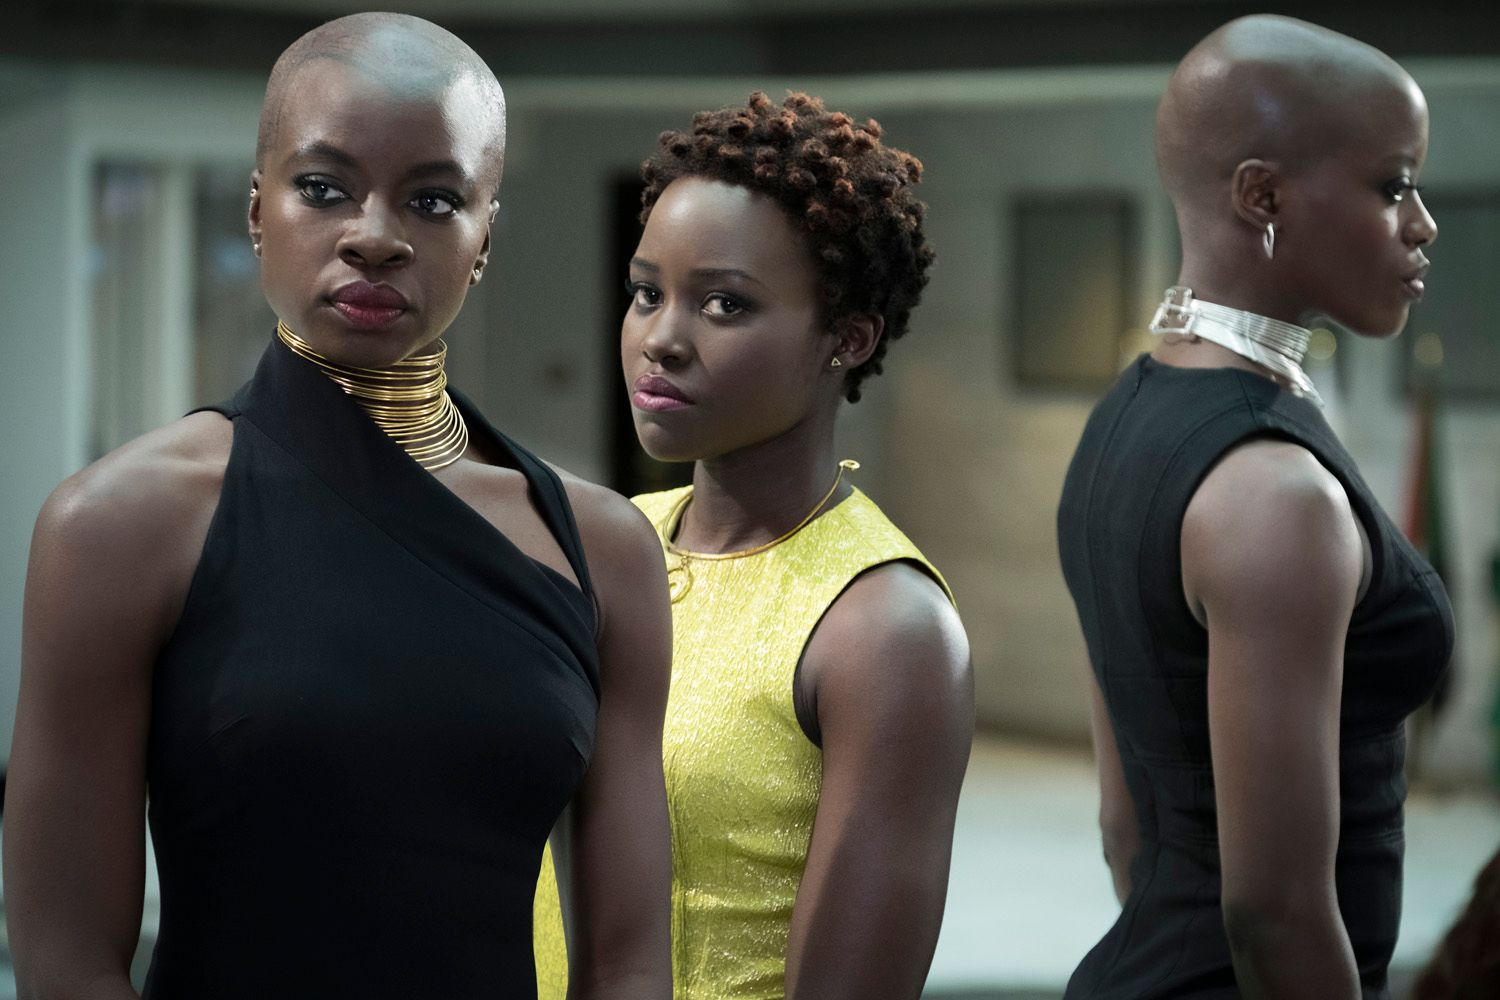 black panther danai gurira lupita nyongo - 'Black Panther' Box Office Scores Highest Monday of All Time, Brings 4-Day Total to $241 Million